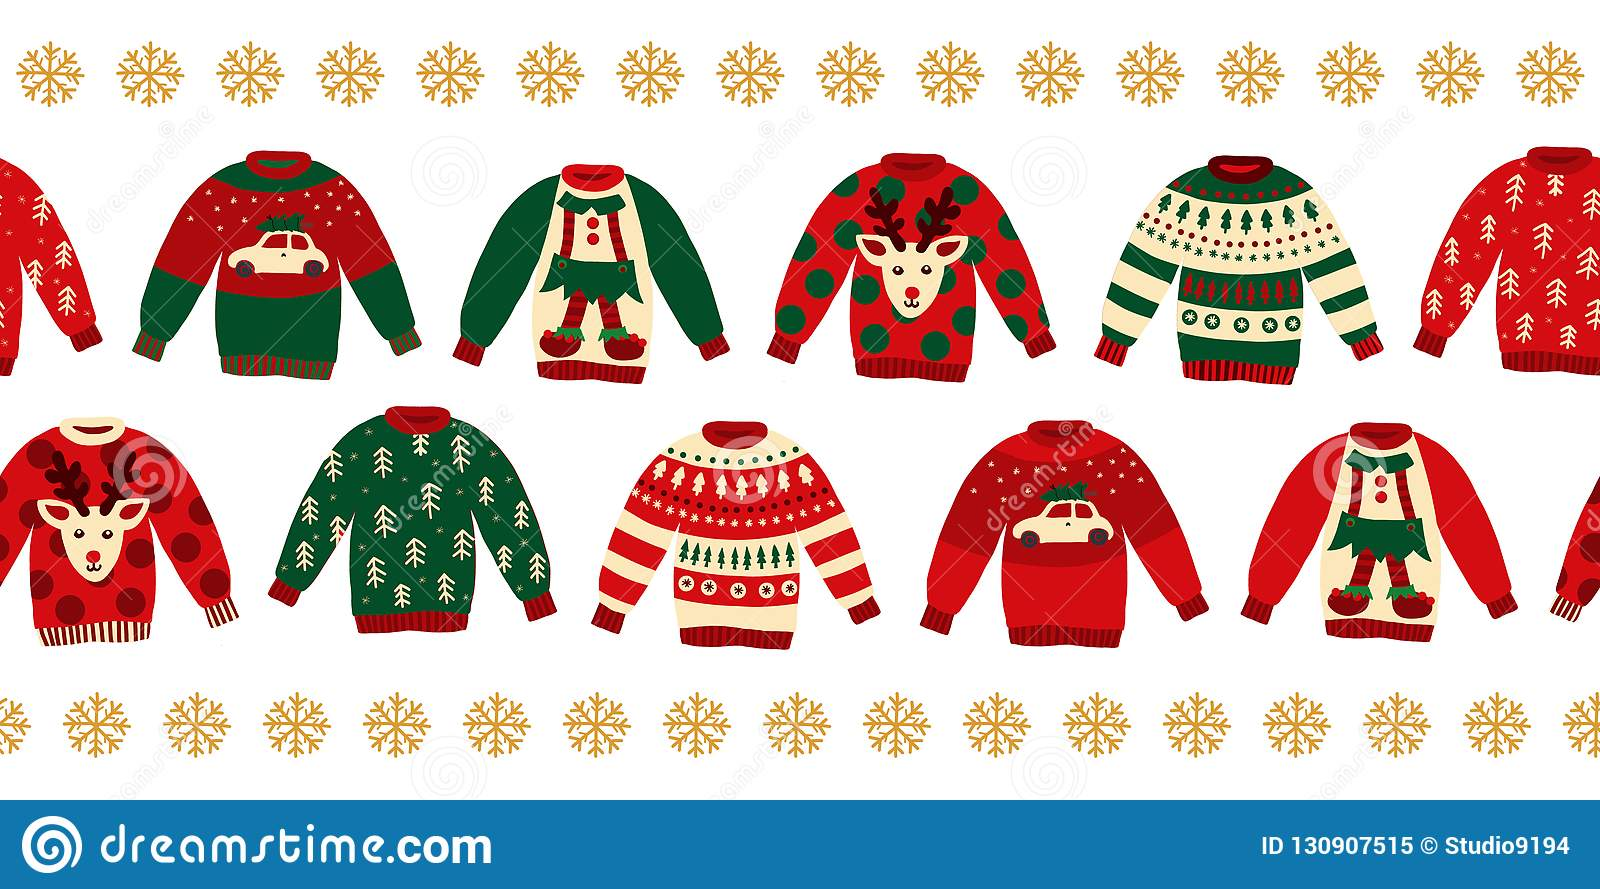 Ugly Christmas Sweaters Seamless Vector Border Stock Vector ...